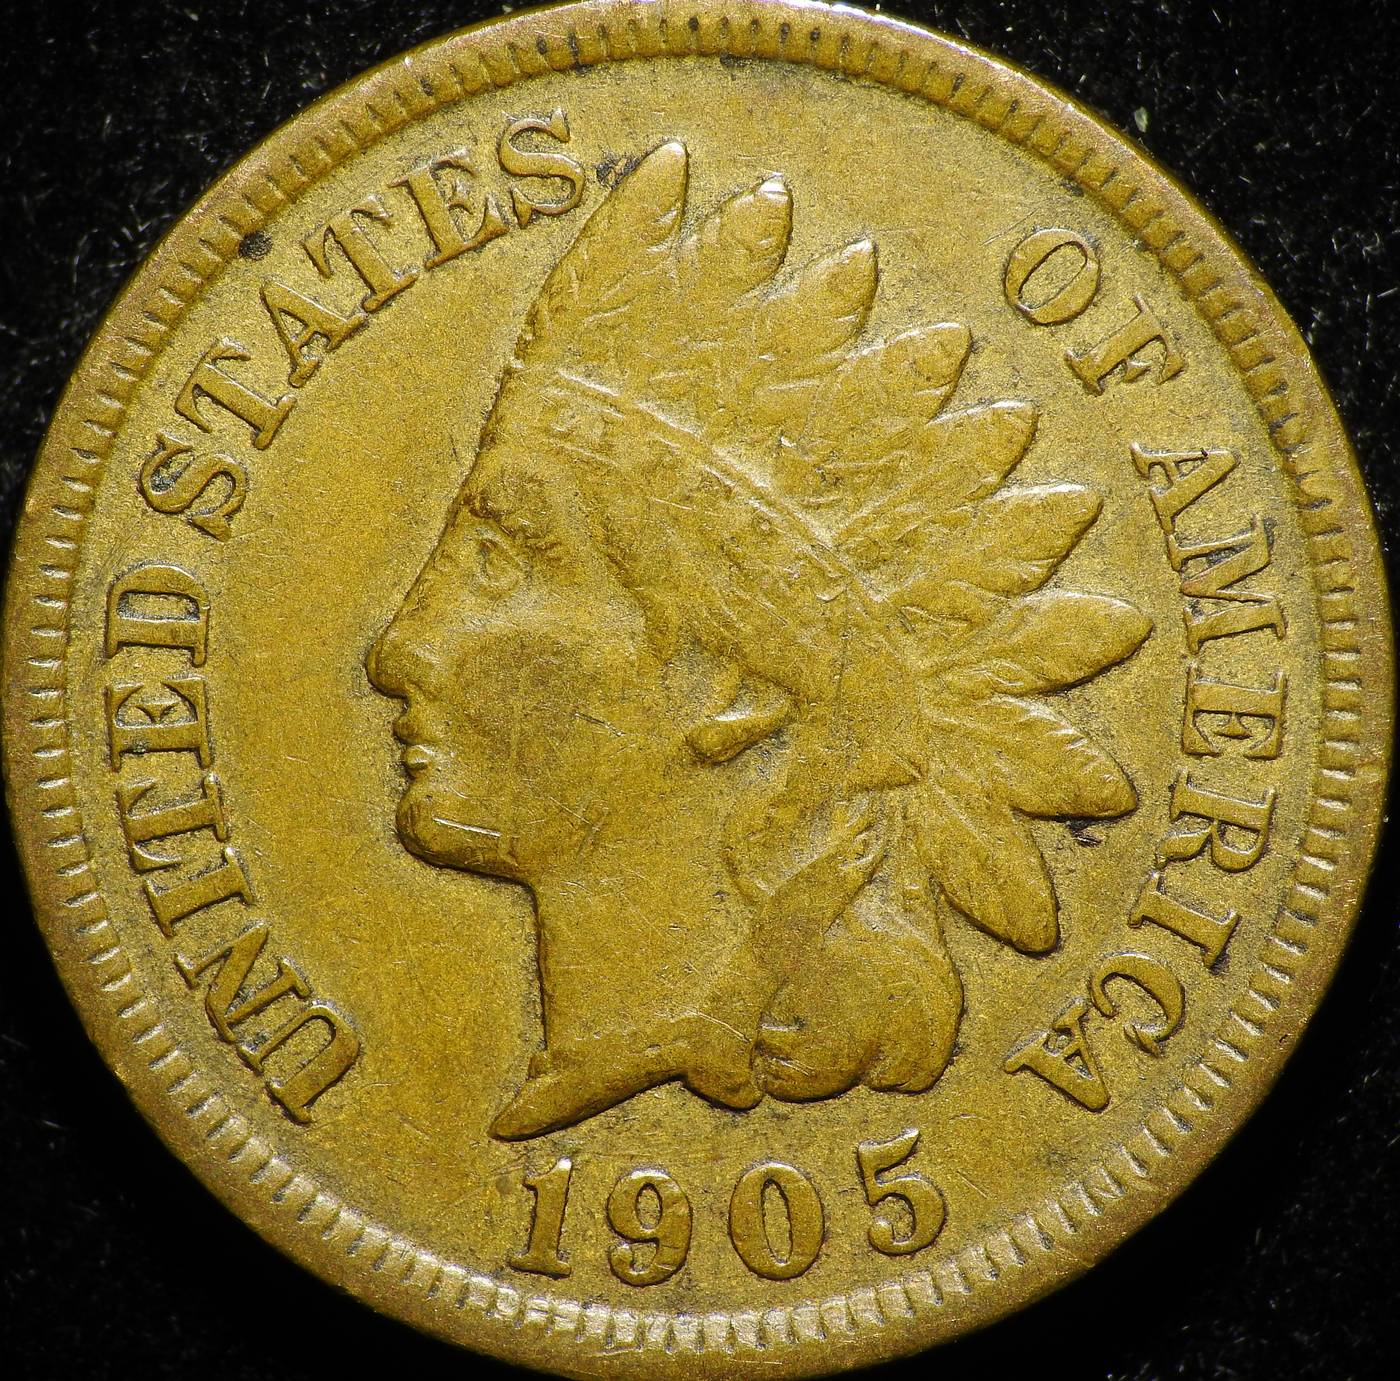 1905 Obverse of CUD-006 - Indian Head Penny